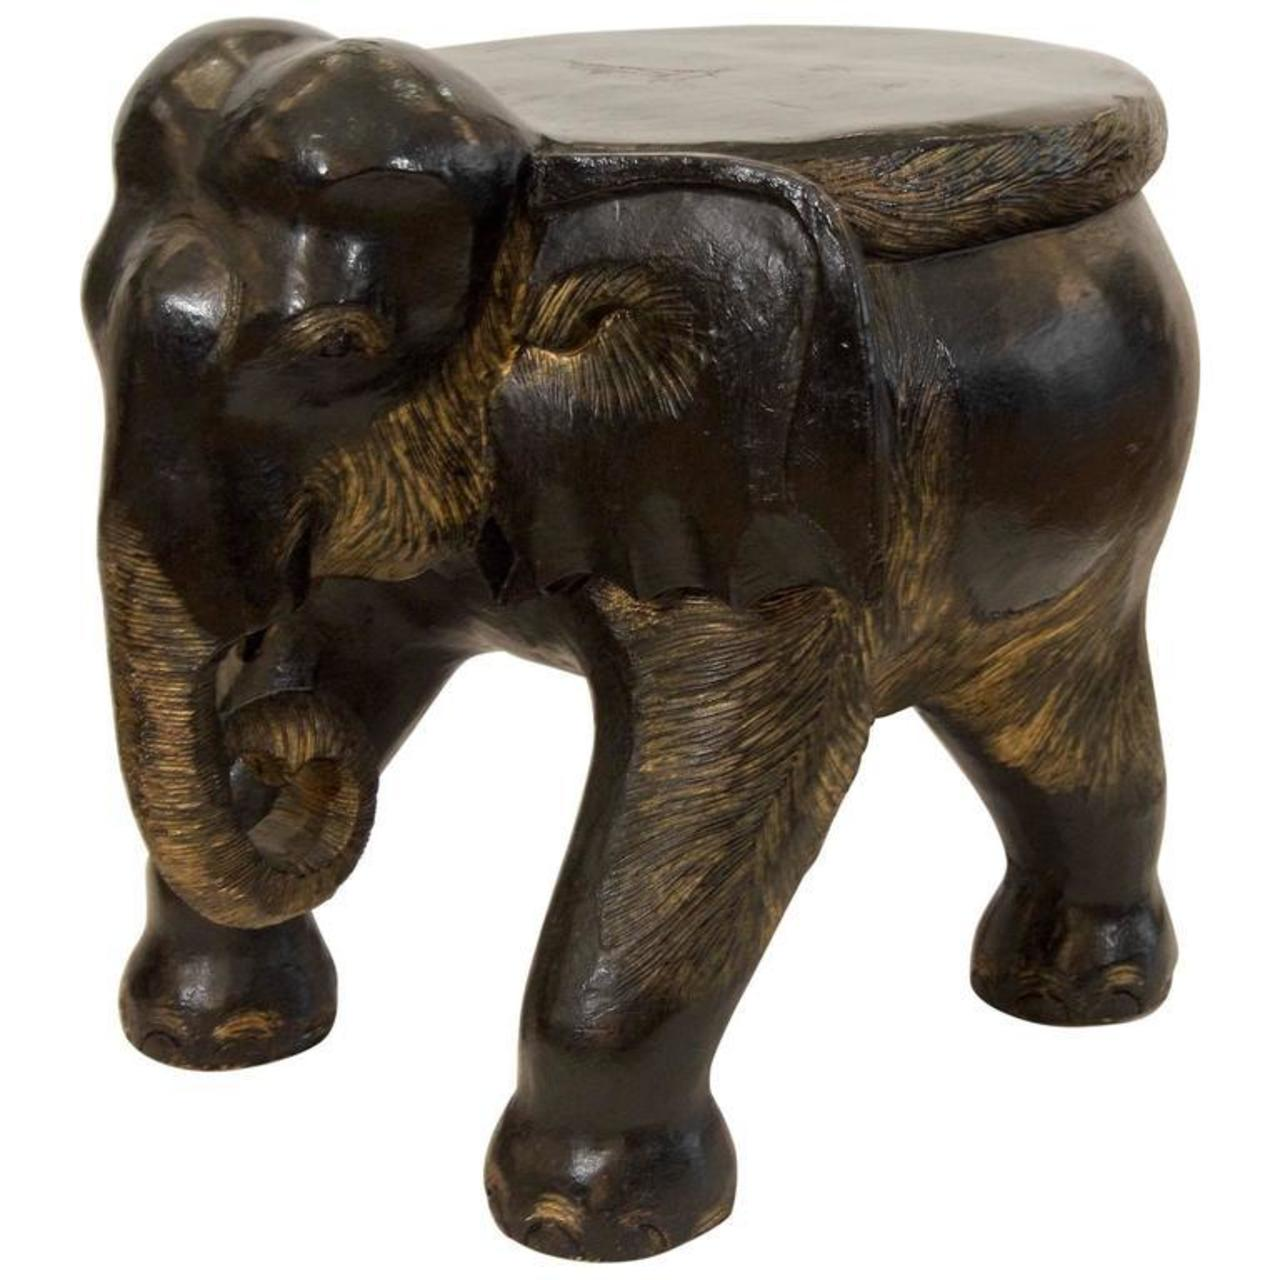 Sensational Carved Wood Elephant Stool Flessas Design Onthecornerstone Fun Painted Chair Ideas Images Onthecornerstoneorg